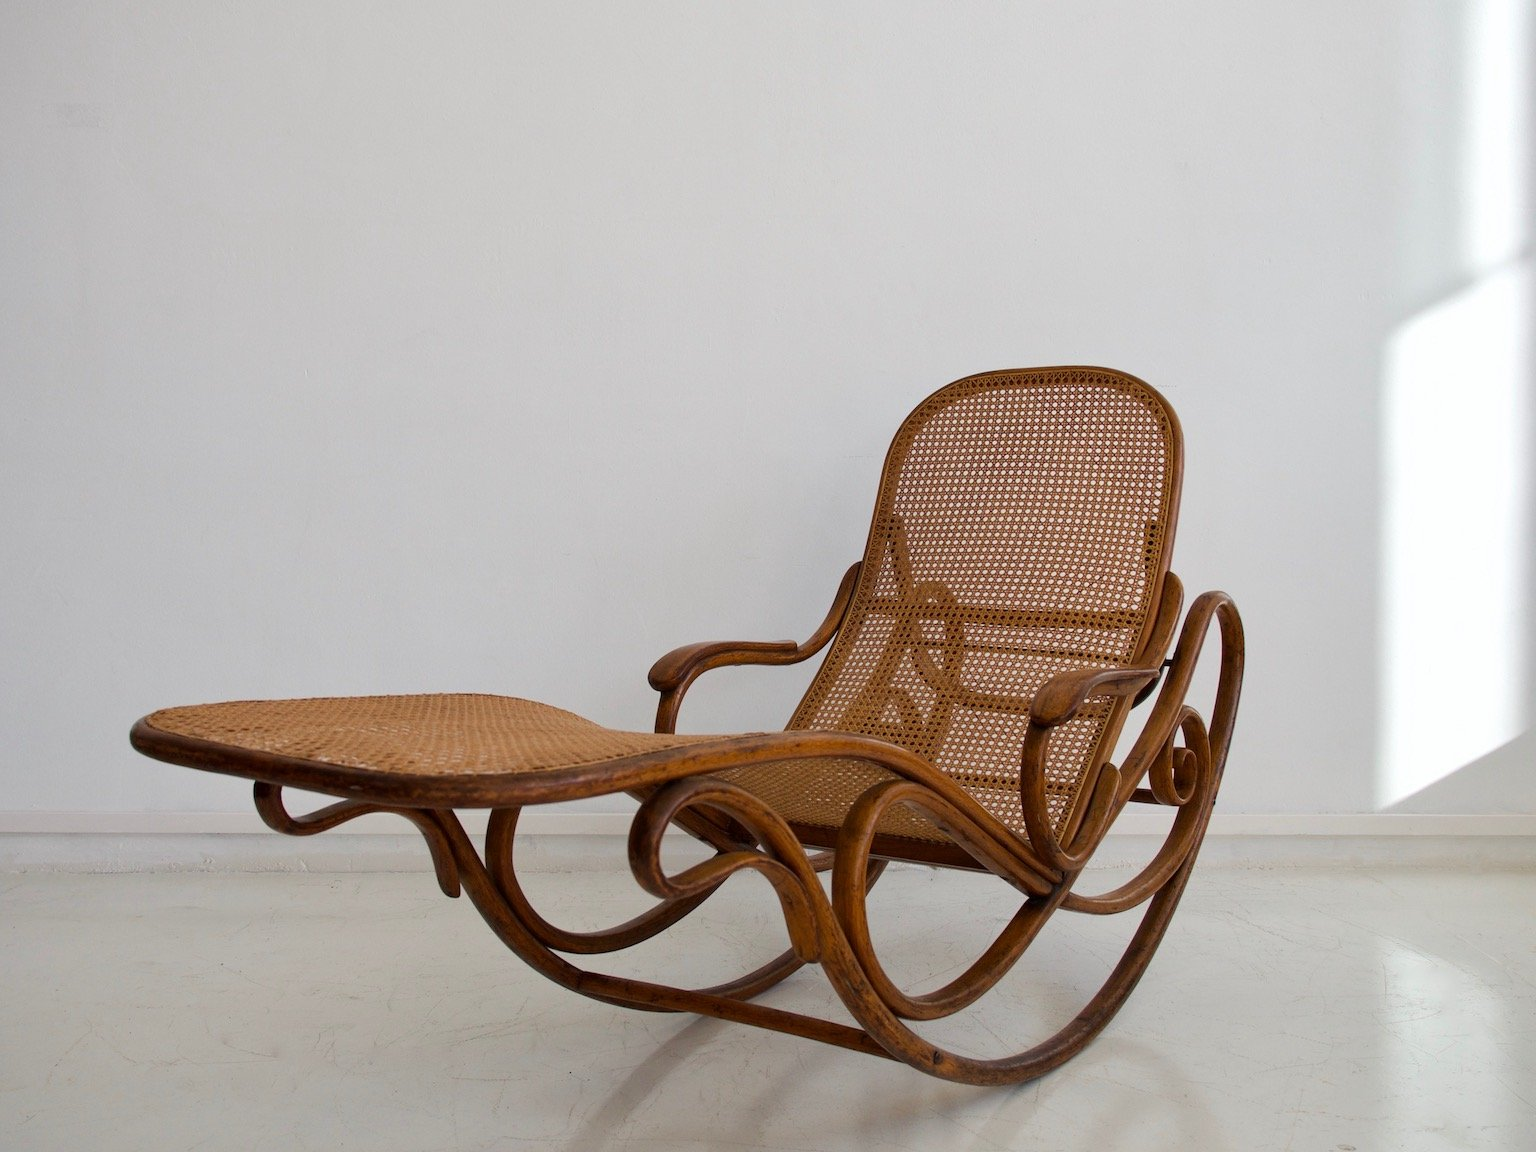 antique rocking chair price guide chairs for kitchen island model 7500 from thonet sale at